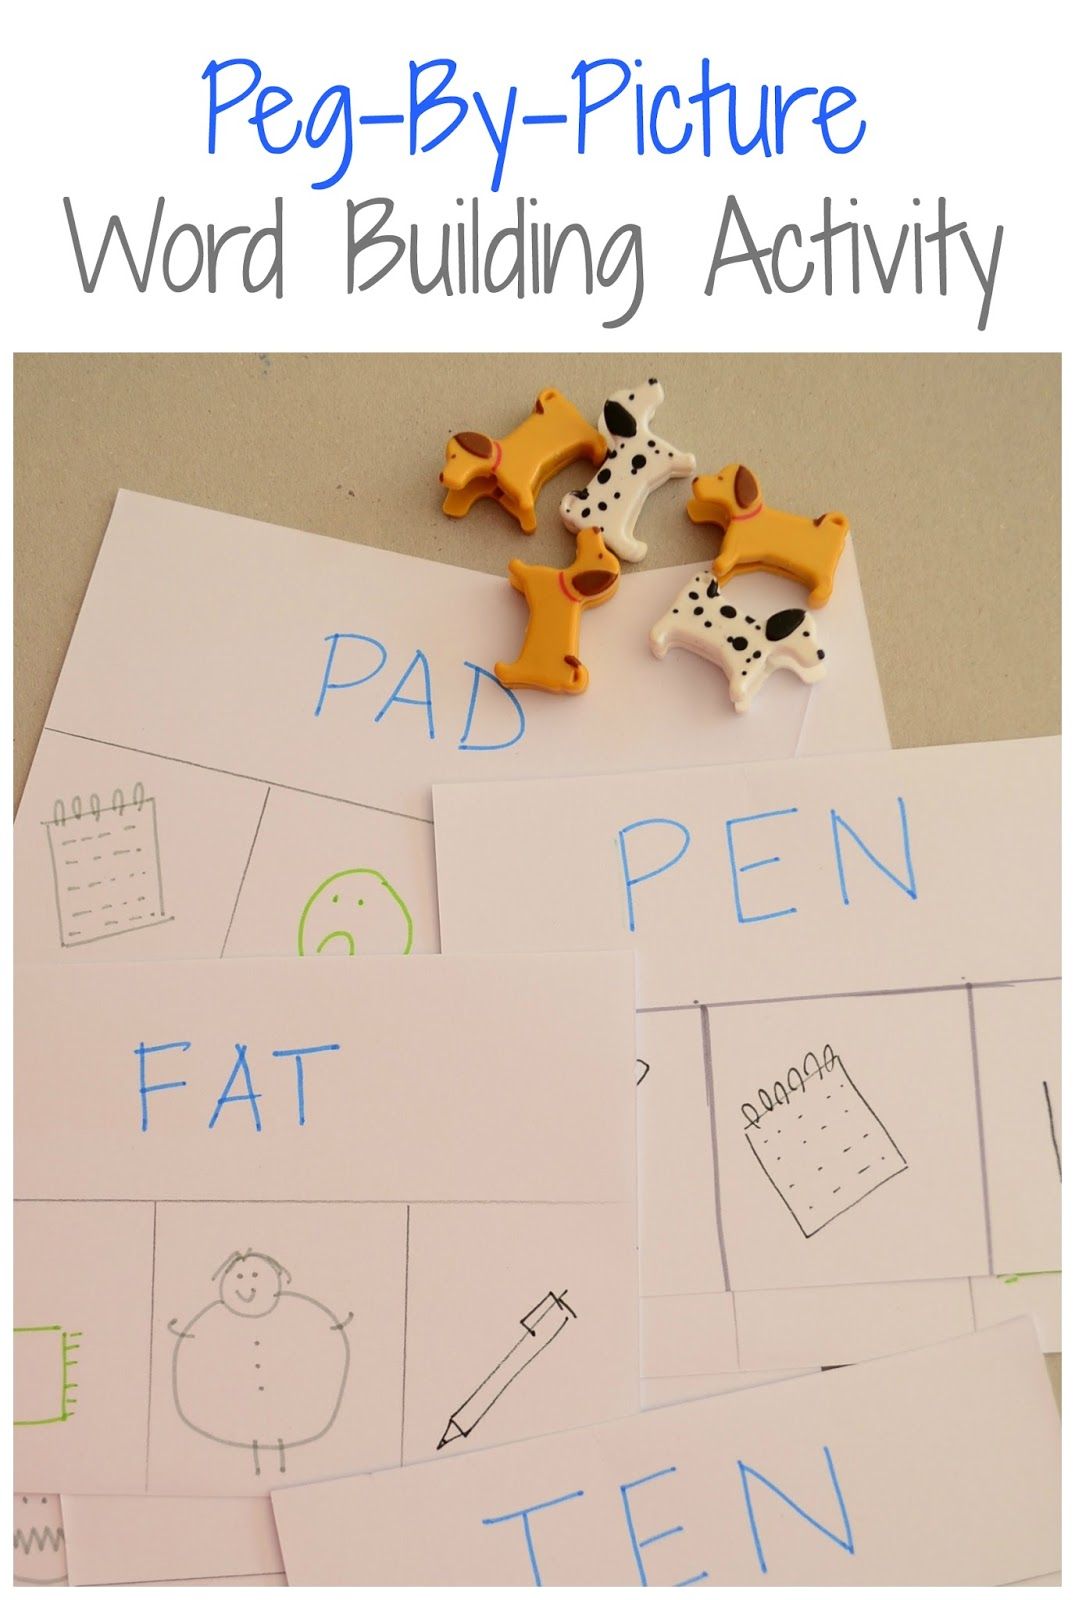 Word building activity using homemade sight word sheets and toy animals.